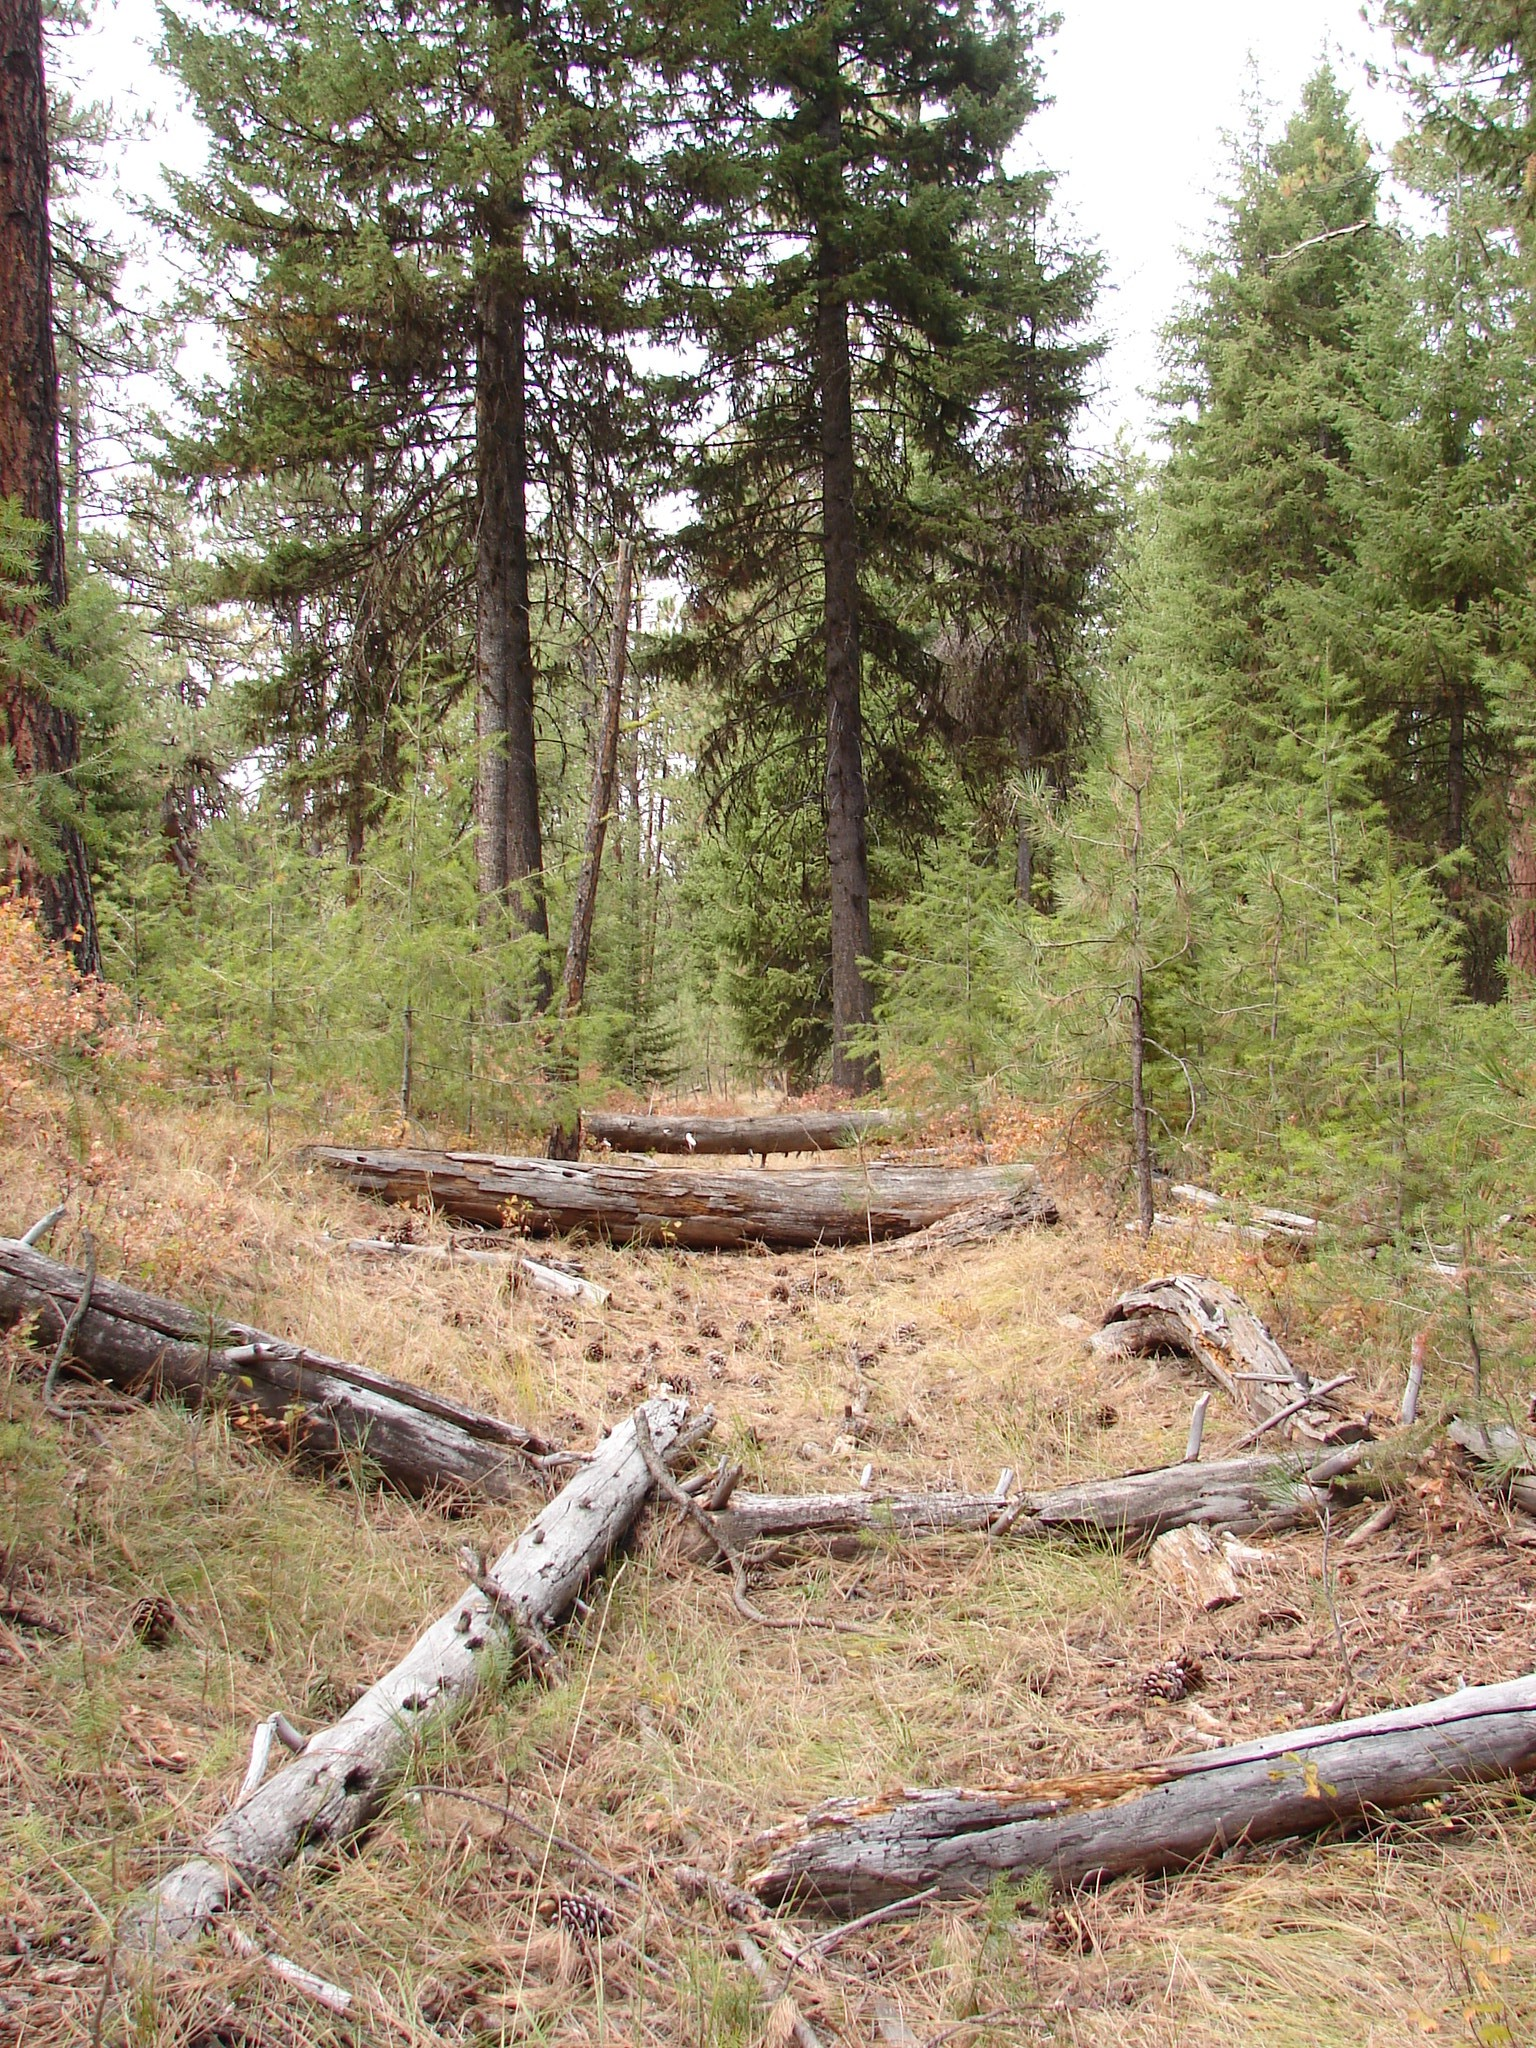 Oregon Trail wagon ruts going through a pine forest